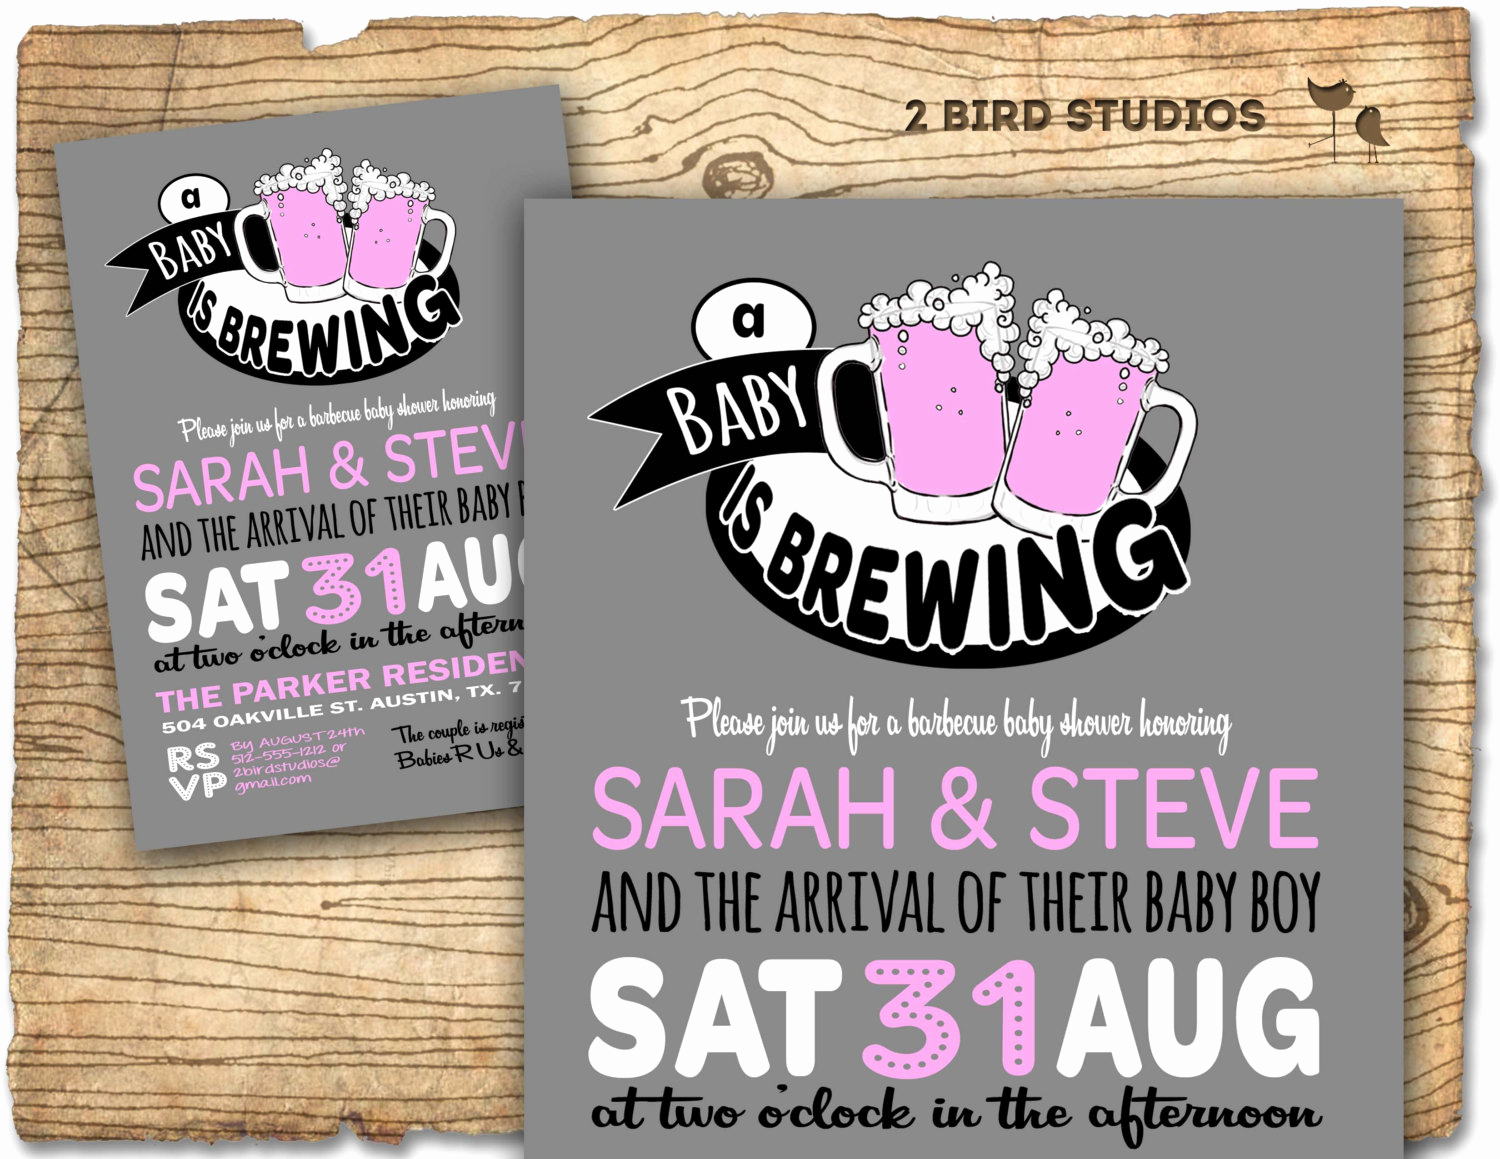 Baby Shower Invitation Pics Best Of Baby Q Beer Baby Shower Invitation Baby Q Baby Shower